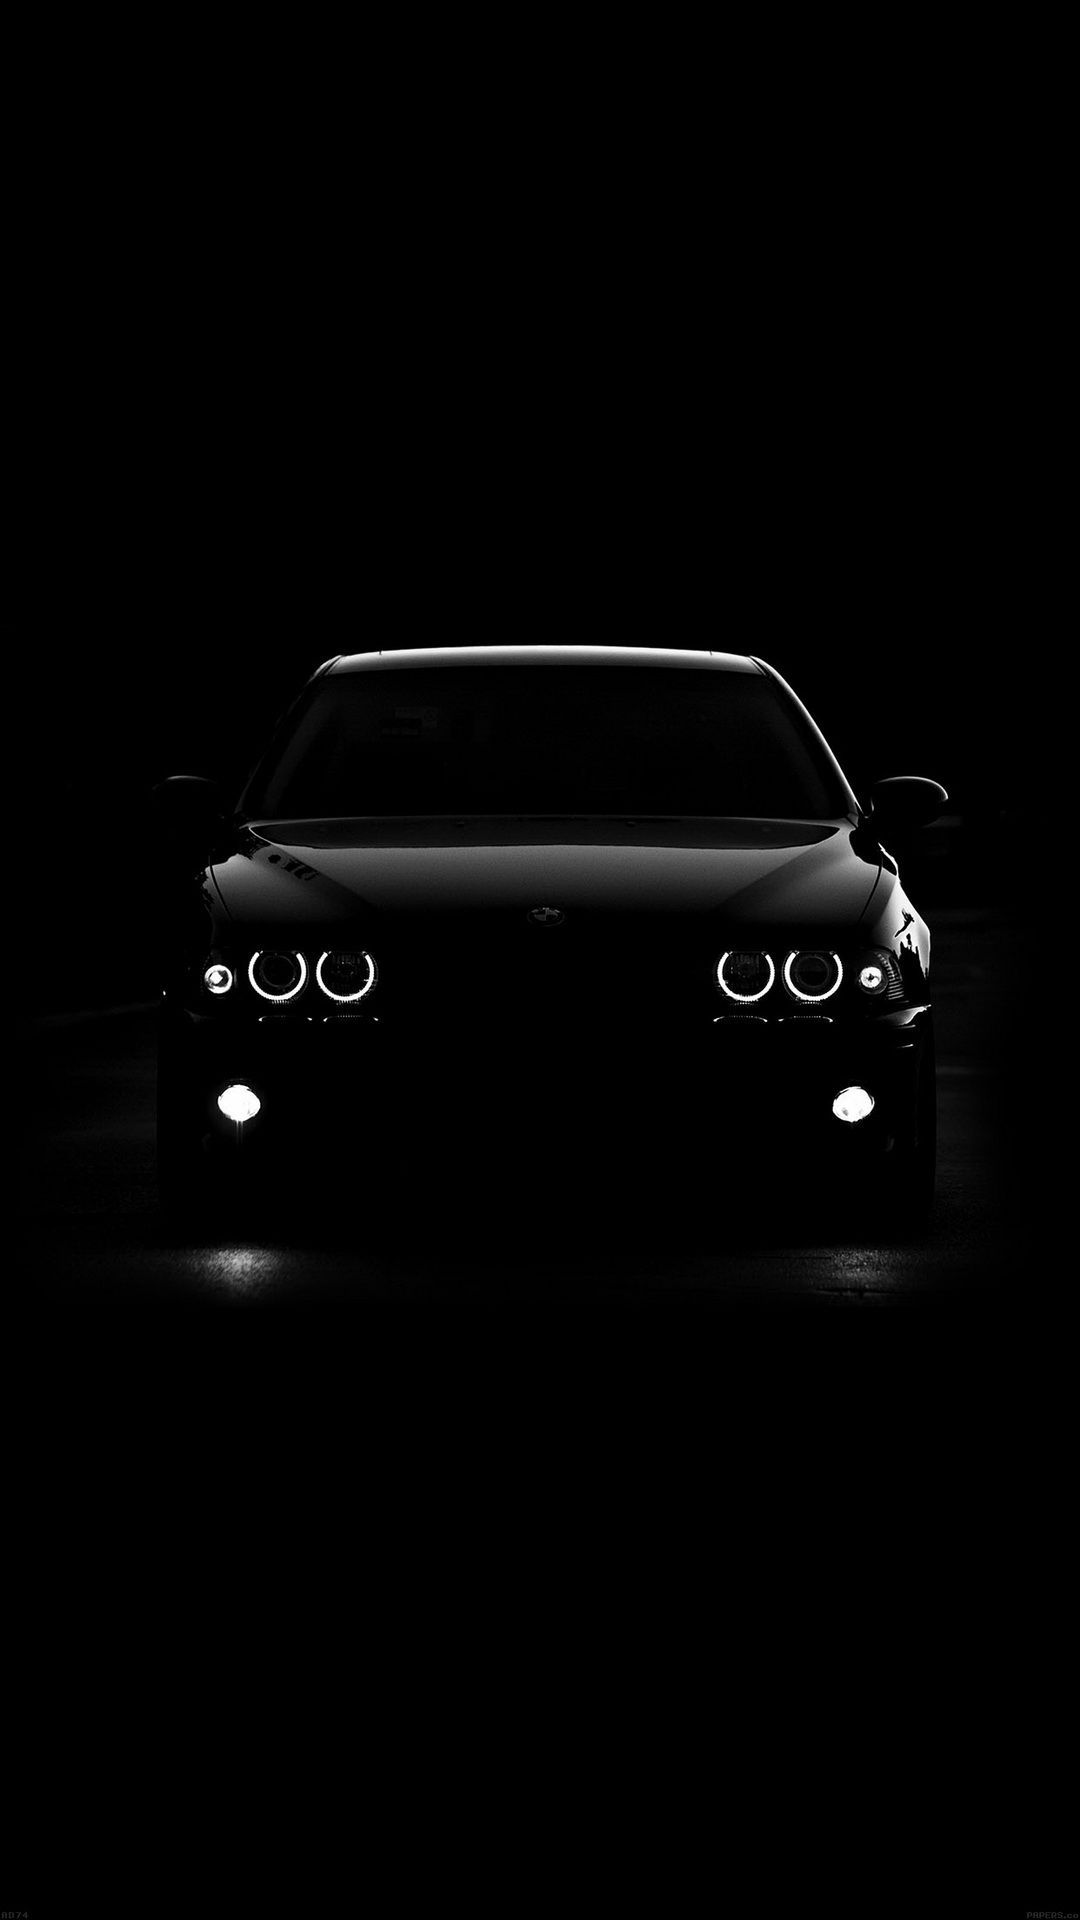 Bmw Black Car High Quality Htc One Wallpapers And Abstract